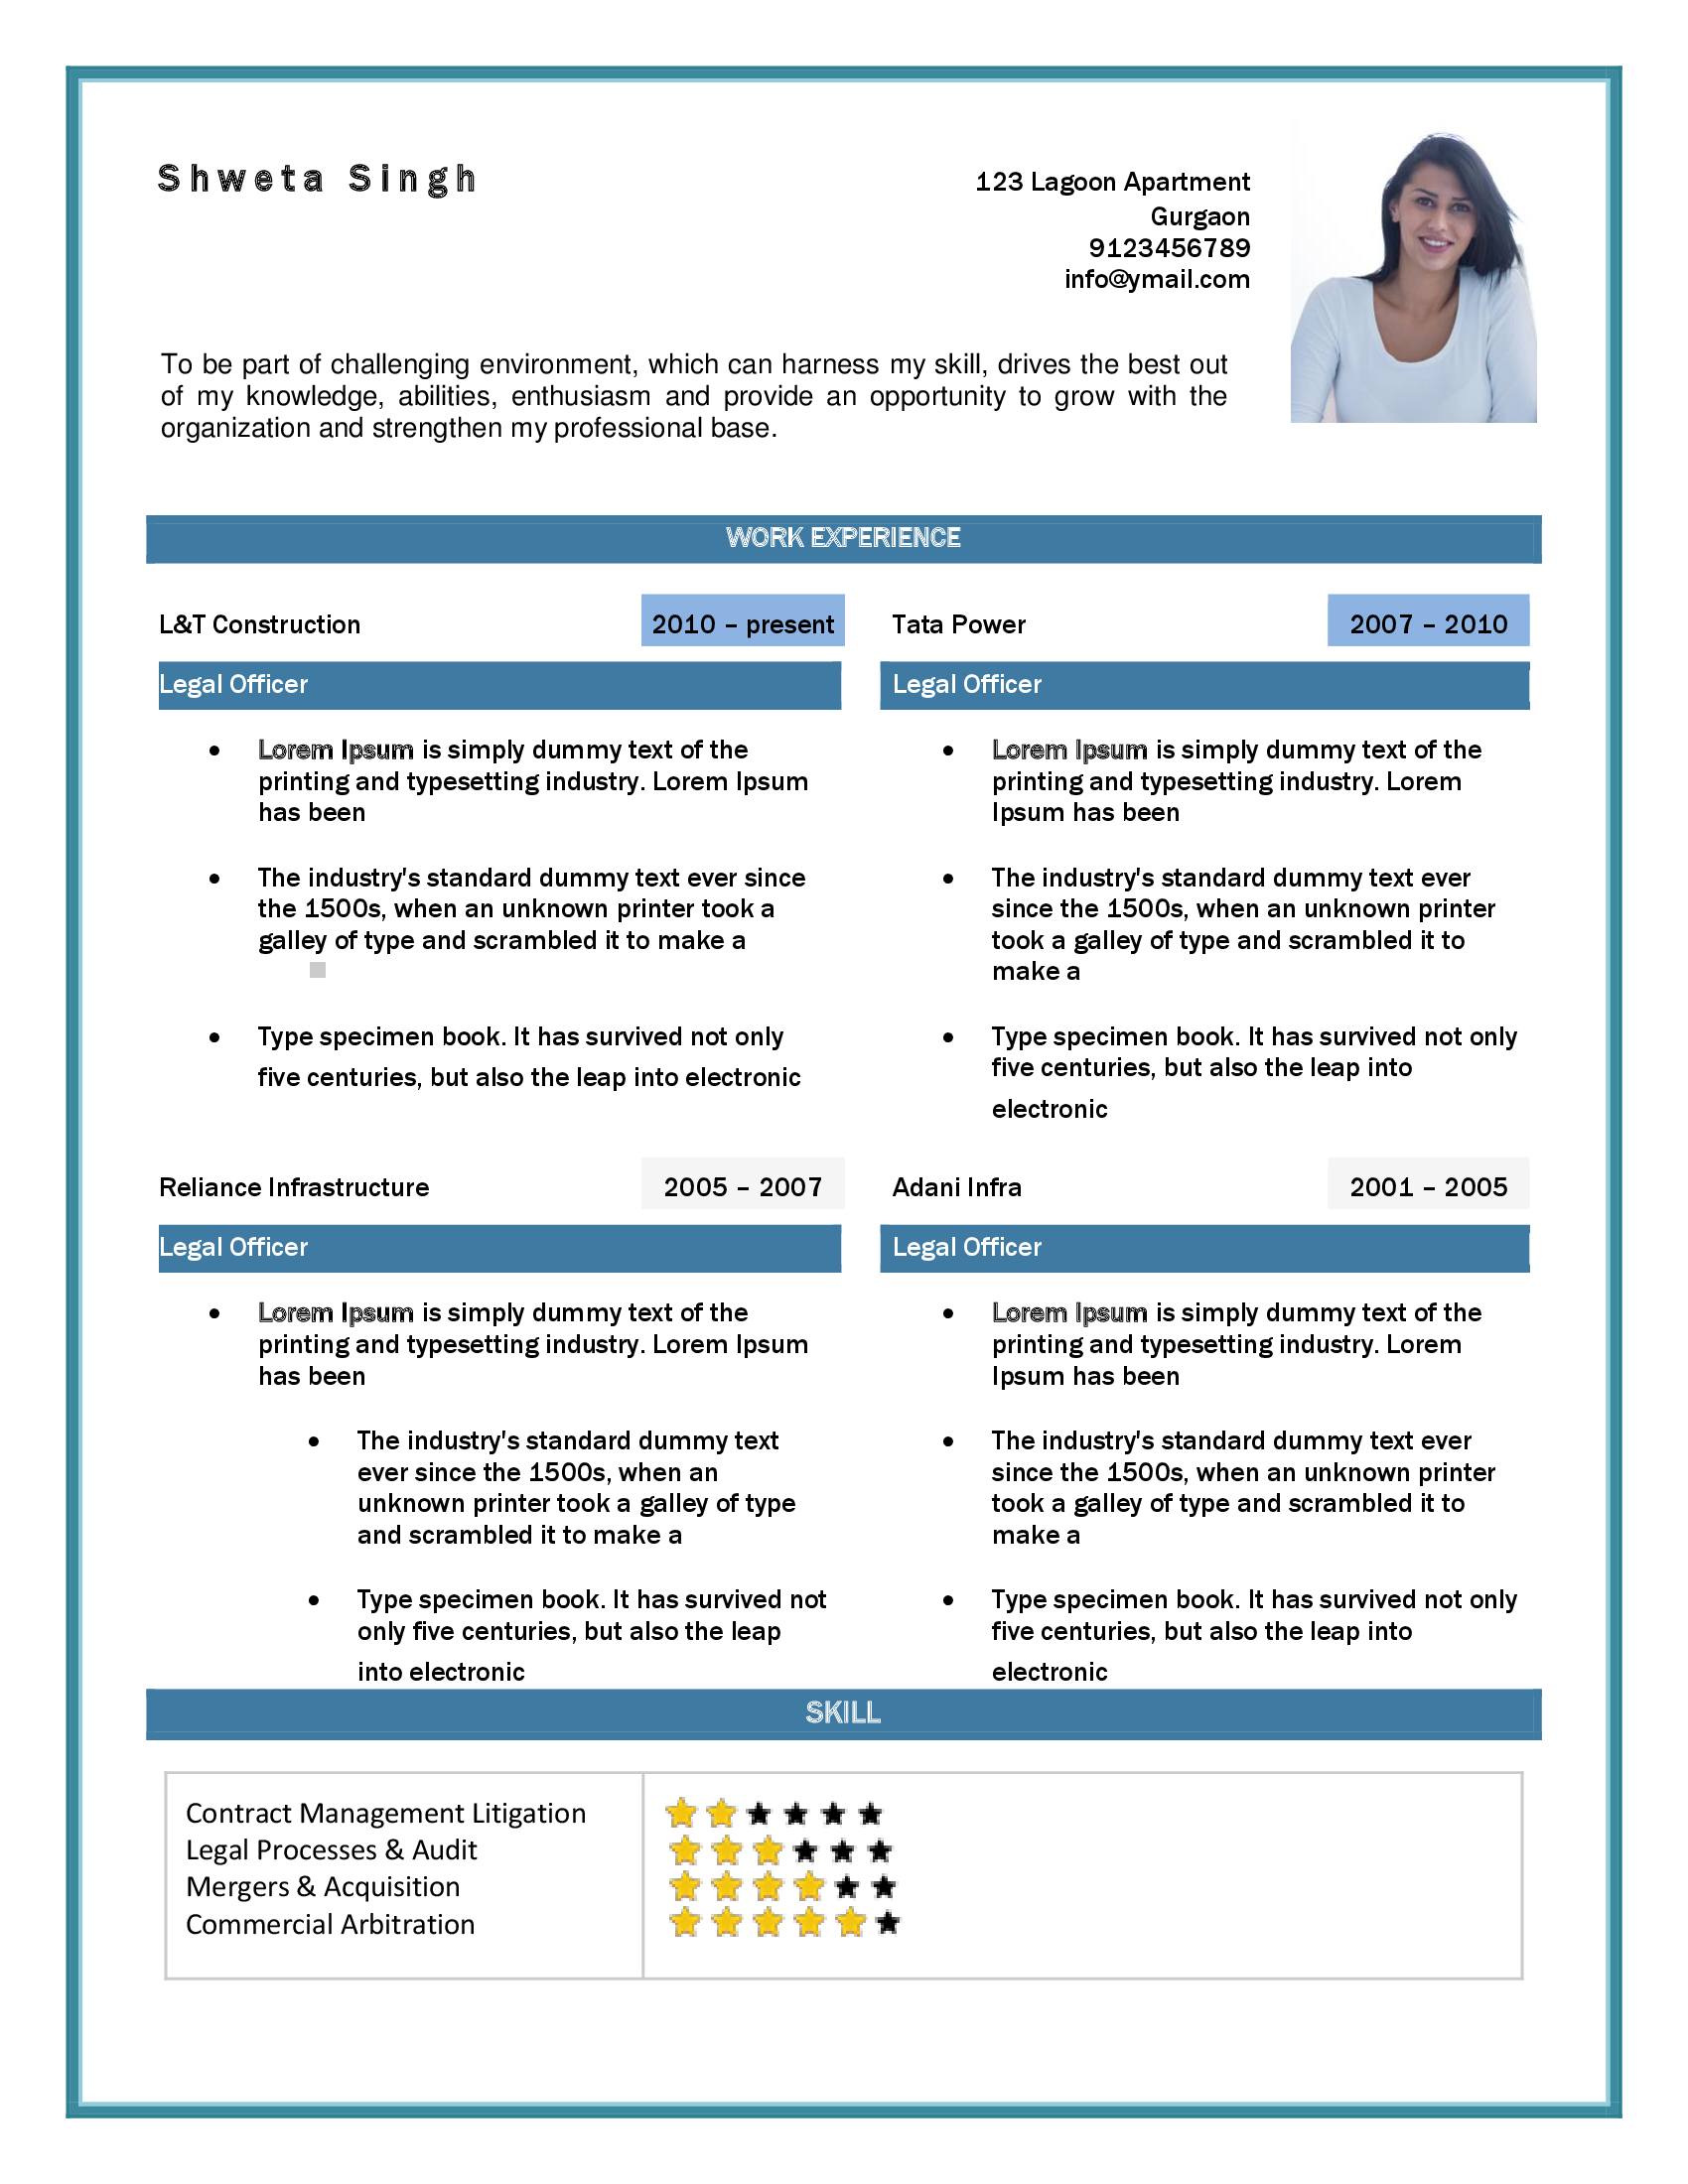 Opposenewapstandardsus  Ravishing Hr Executive Resume  Resume For Hr Executive  Hr Executive  With Licious Enter Your Details With Comely Resume And Cover Letter Template Also Resume Template Latex In Addition Difference Between A Resume And A Cv And Executive Resume Writer As Well As How To Do A Resume For A Job For Free Additionally Sample Resume Skills From Resumetemplatesamplescom With Opposenewapstandardsus  Licious Hr Executive Resume  Resume For Hr Executive  Hr Executive  With Comely Enter Your Details And Ravishing Resume And Cover Letter Template Also Resume Template Latex In Addition Difference Between A Resume And A Cv From Resumetemplatesamplescom